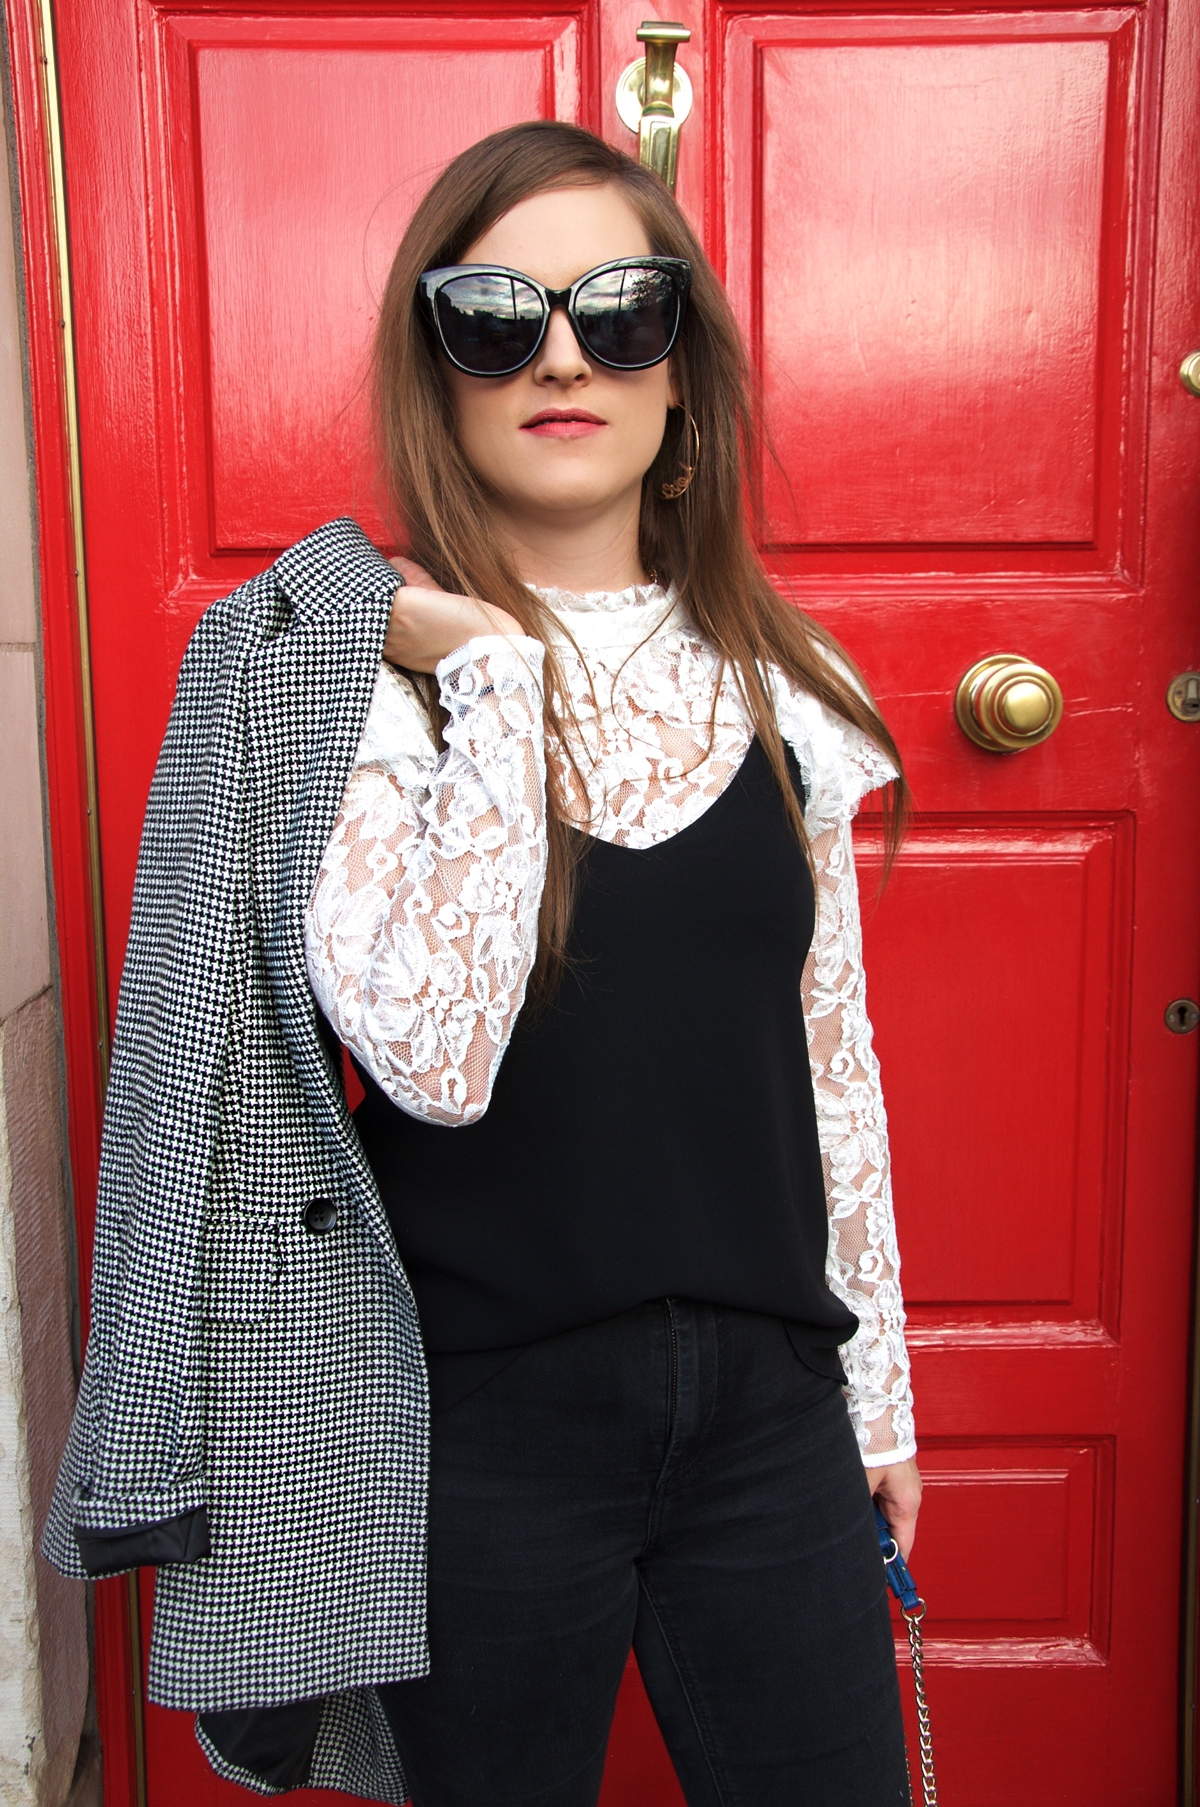 Mode blog, Strawberries und Champagne von Andrea Steiner sagt, was Sie am Layering-Look liebt.